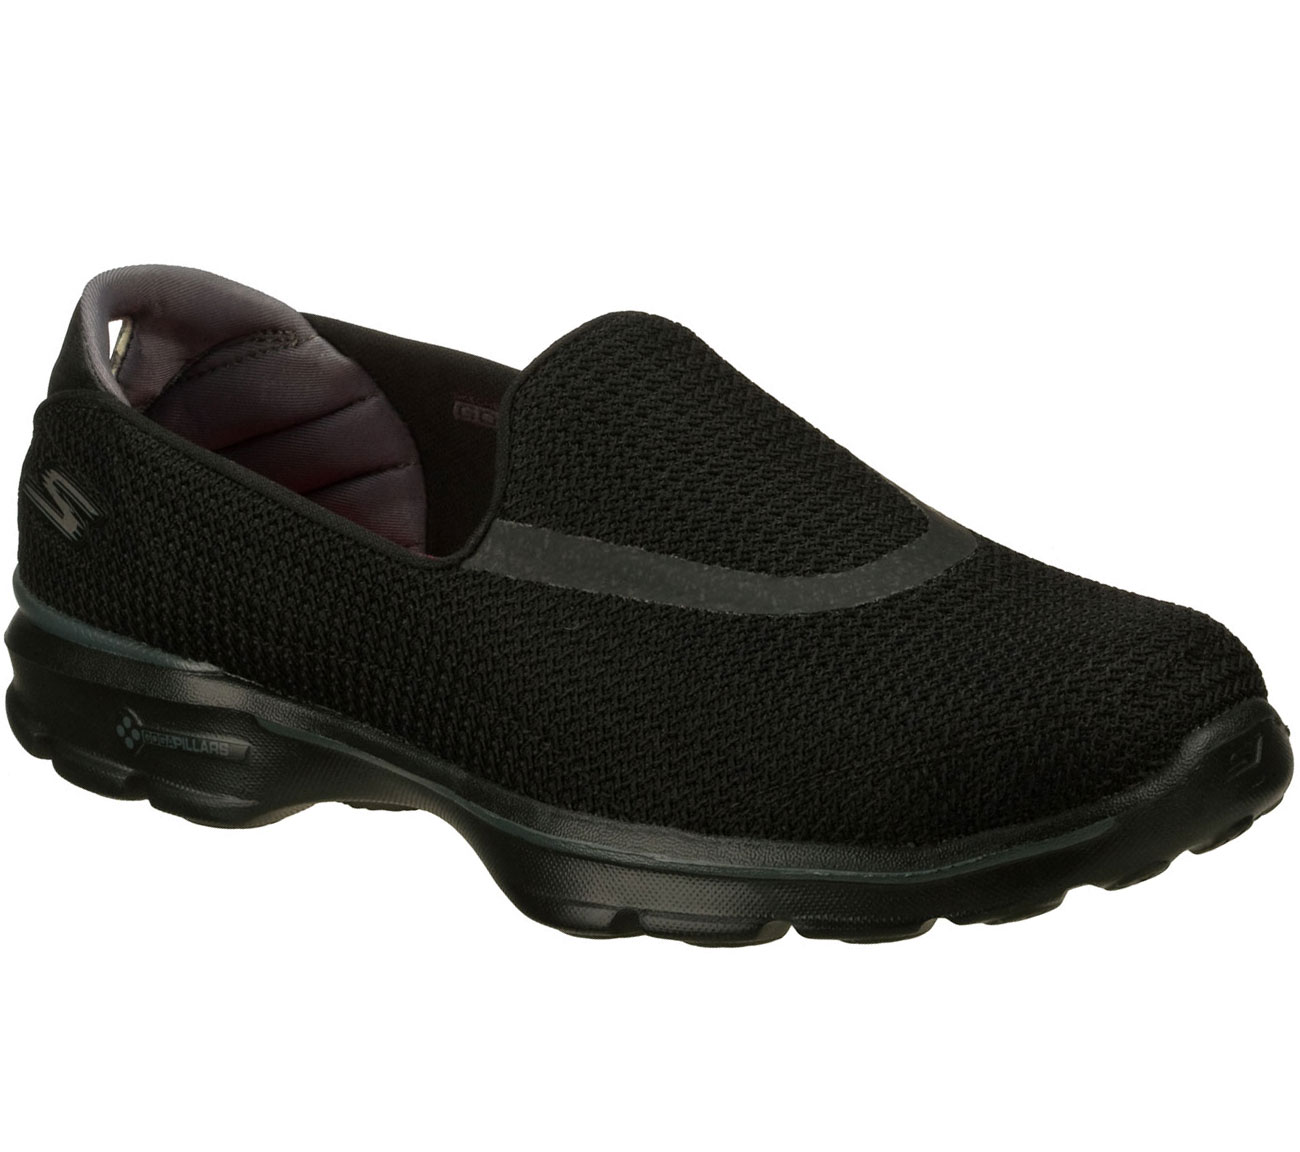 Sketcher Work Shoes Air